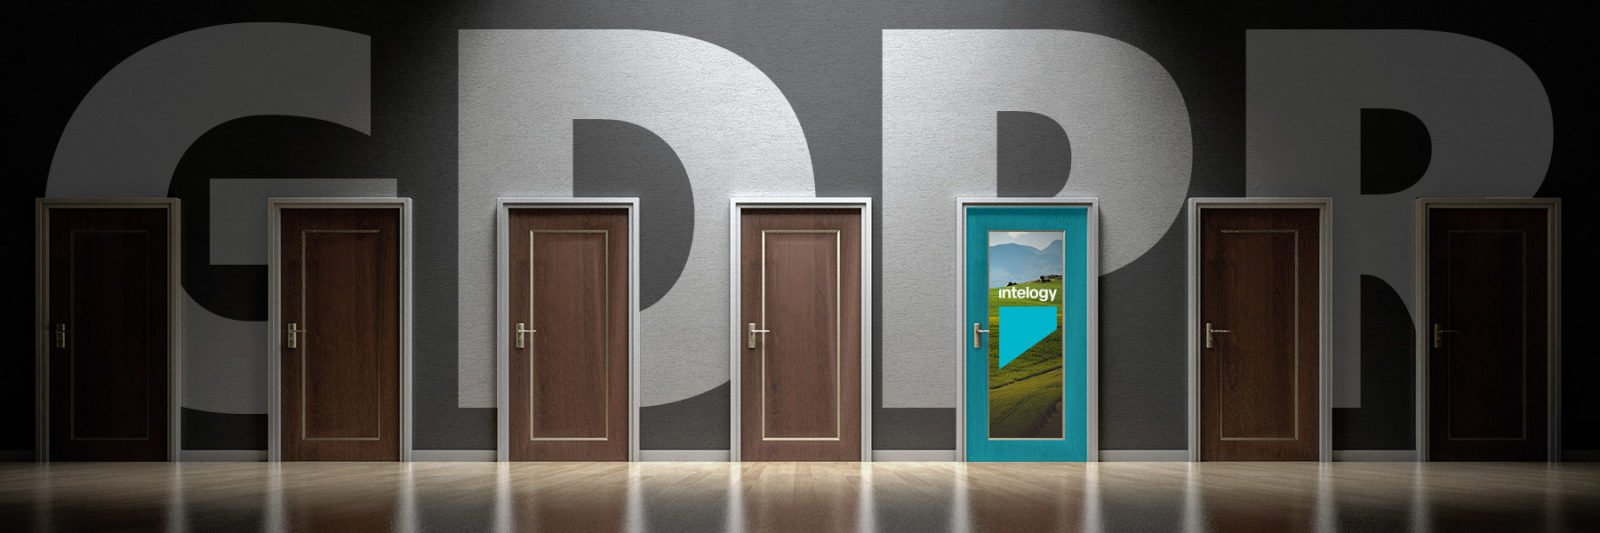 GDPR Wallpaper with doors